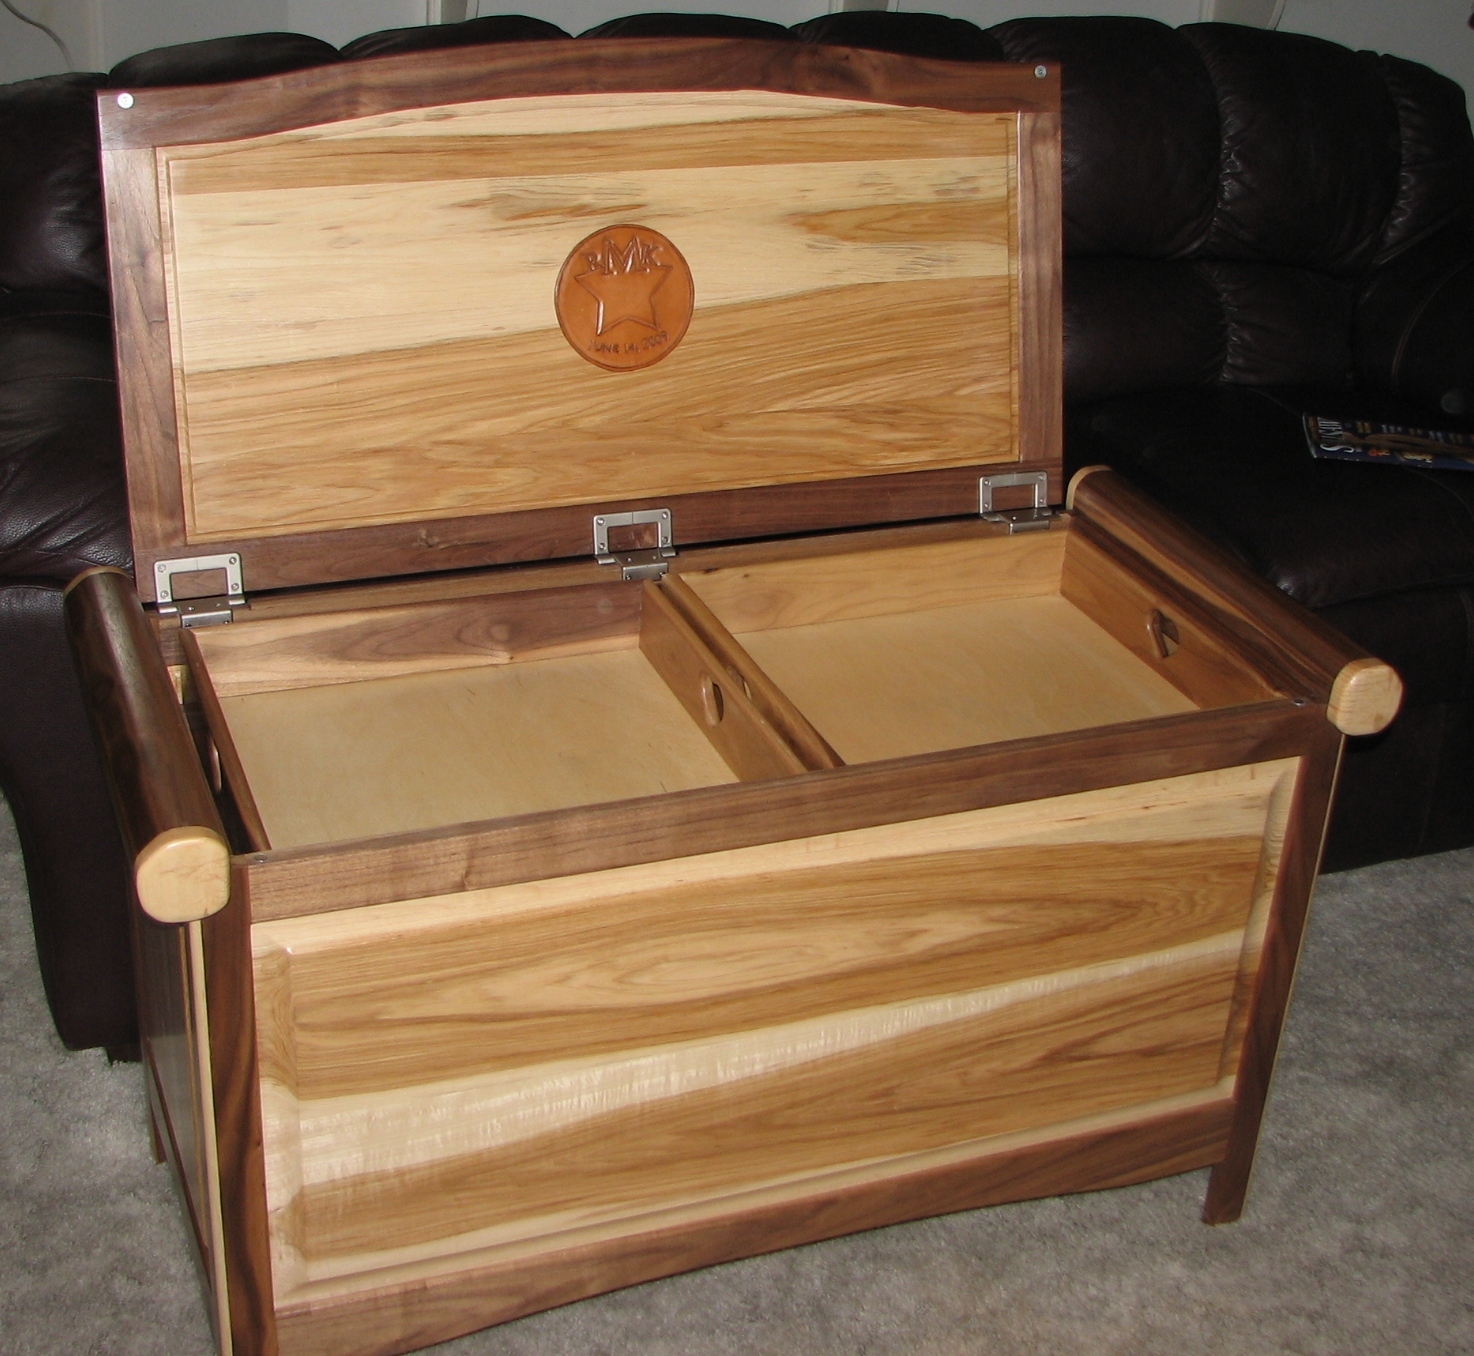 Woodworking cedar hope chest plans PDF Free Download